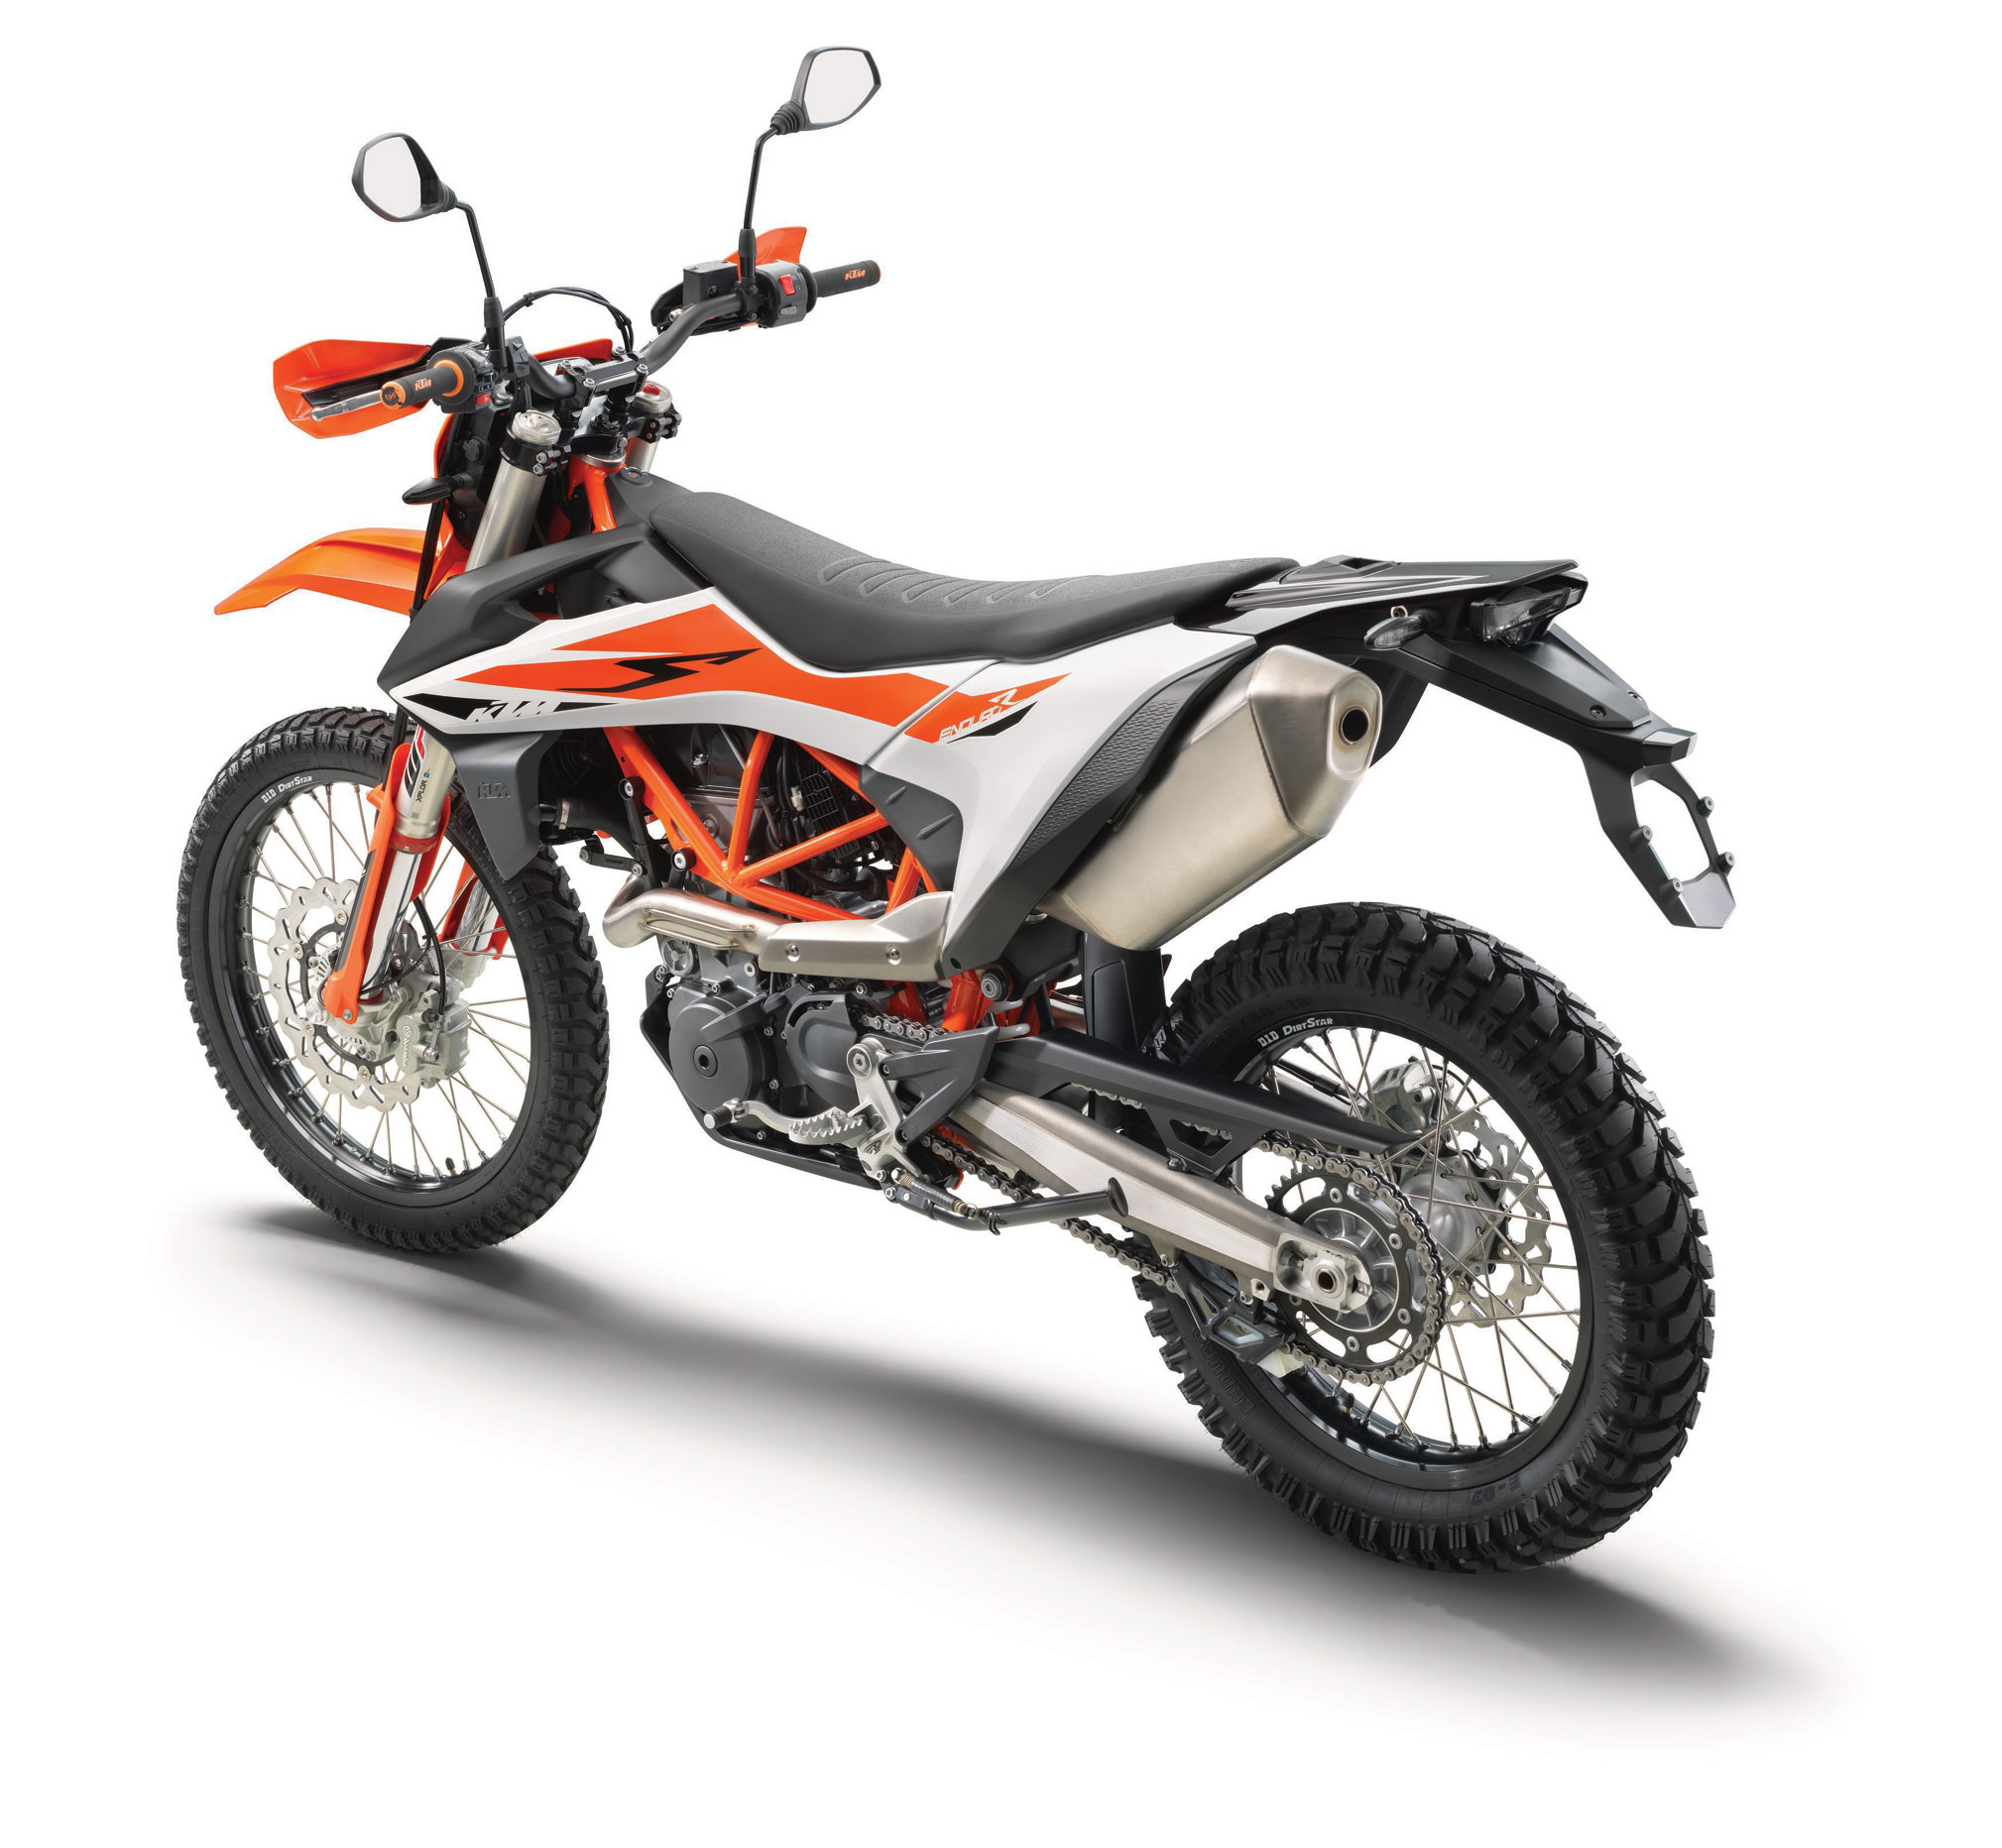 2019 ktm 690 enduro r guide total motorcycle. Black Bedroom Furniture Sets. Home Design Ideas